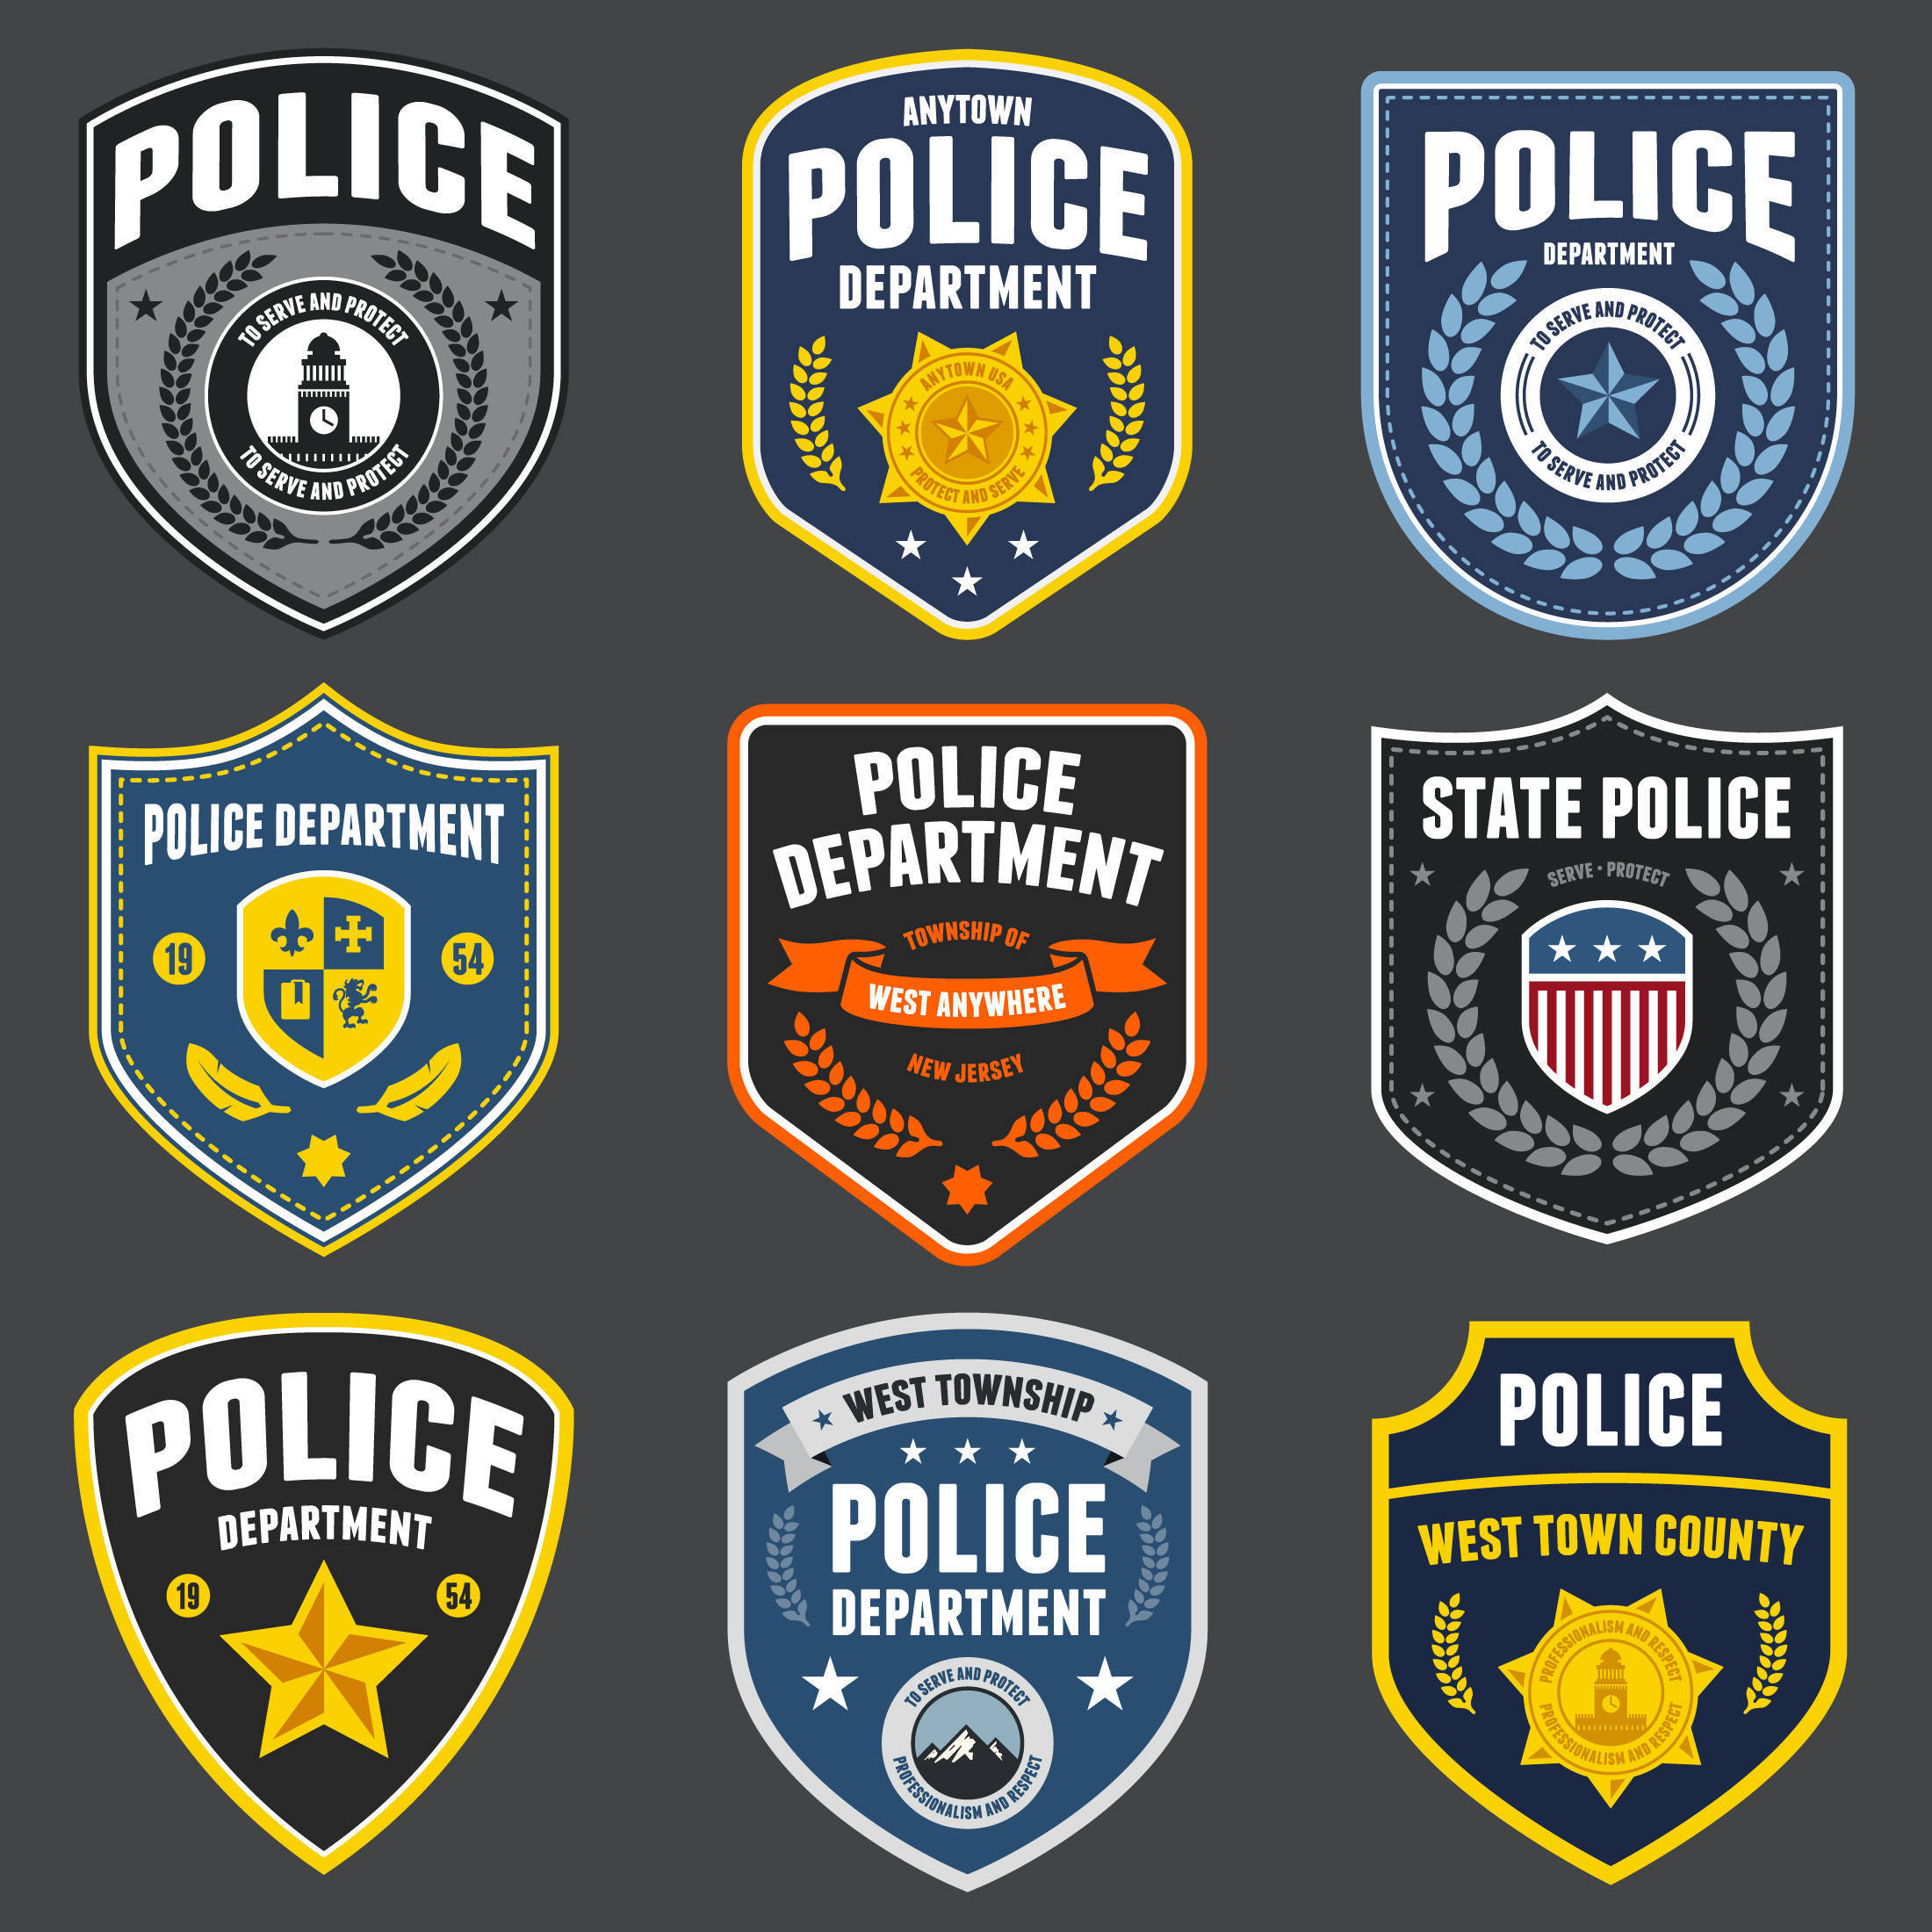 shutterstock_131312288 police patches and emblems.jpg